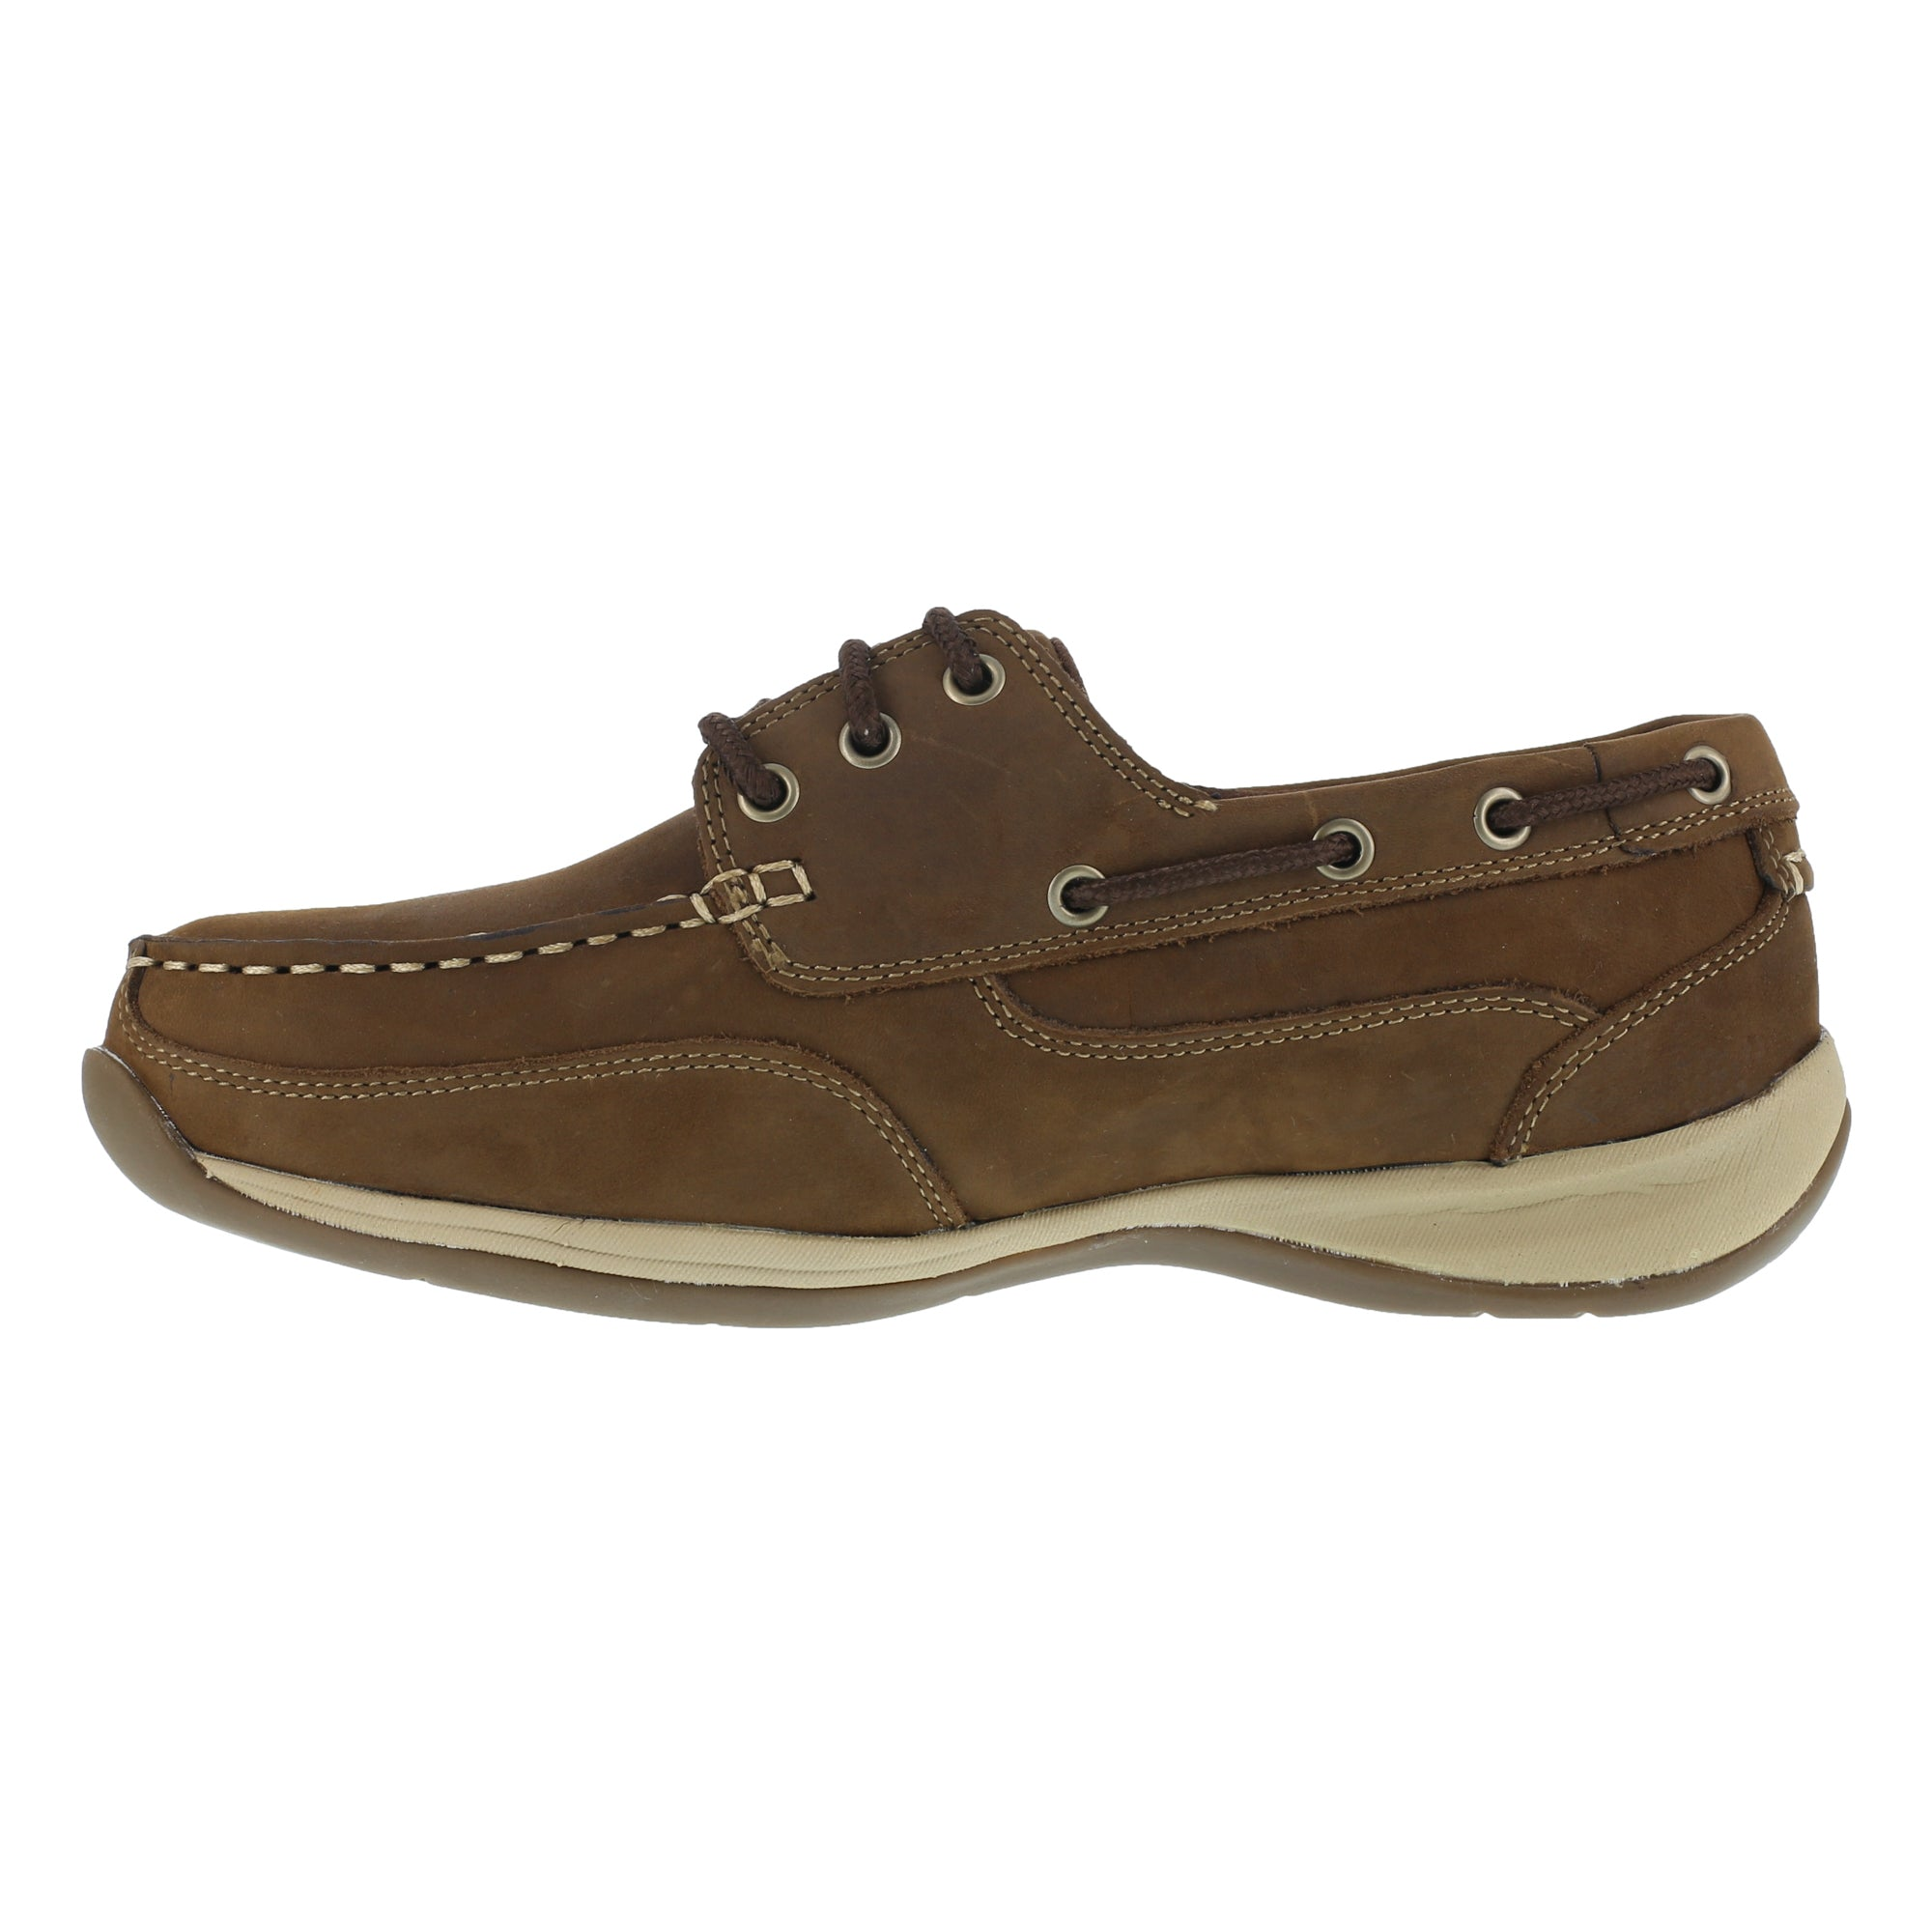 426b22b5929 Rockport Womens Brown Leather Casual Boat Shoes Sailing Club Steel ...